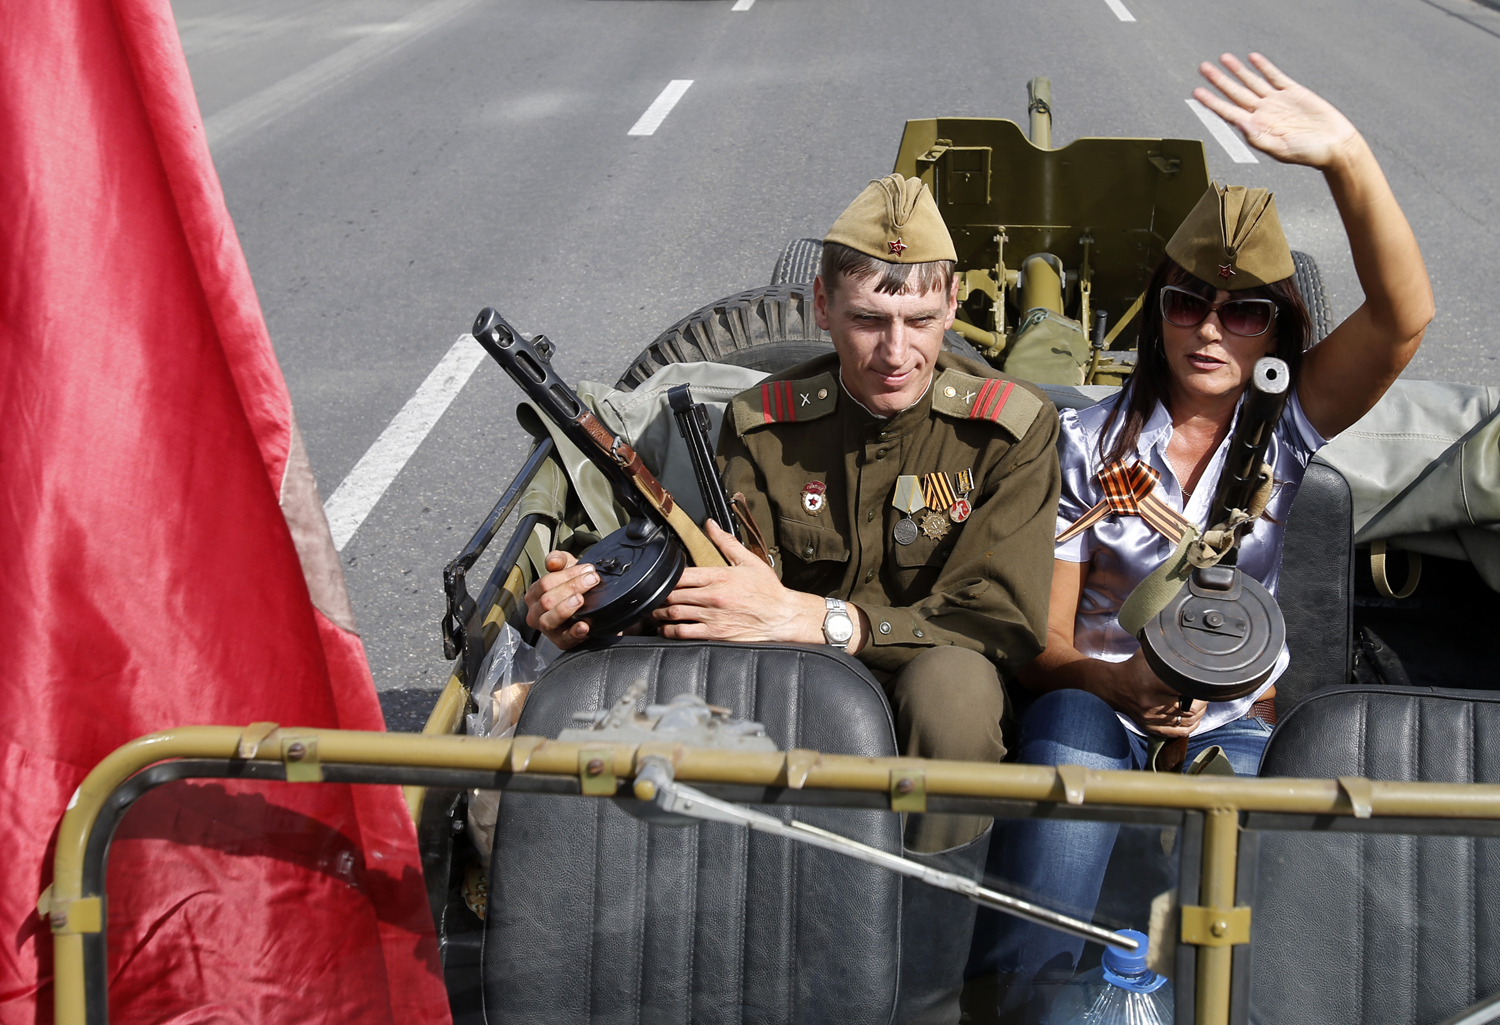 People dressed in old Soviet uniforms attend a parade in the town of Luhansk, eastern Ukraine, on Sept. 14, 2014